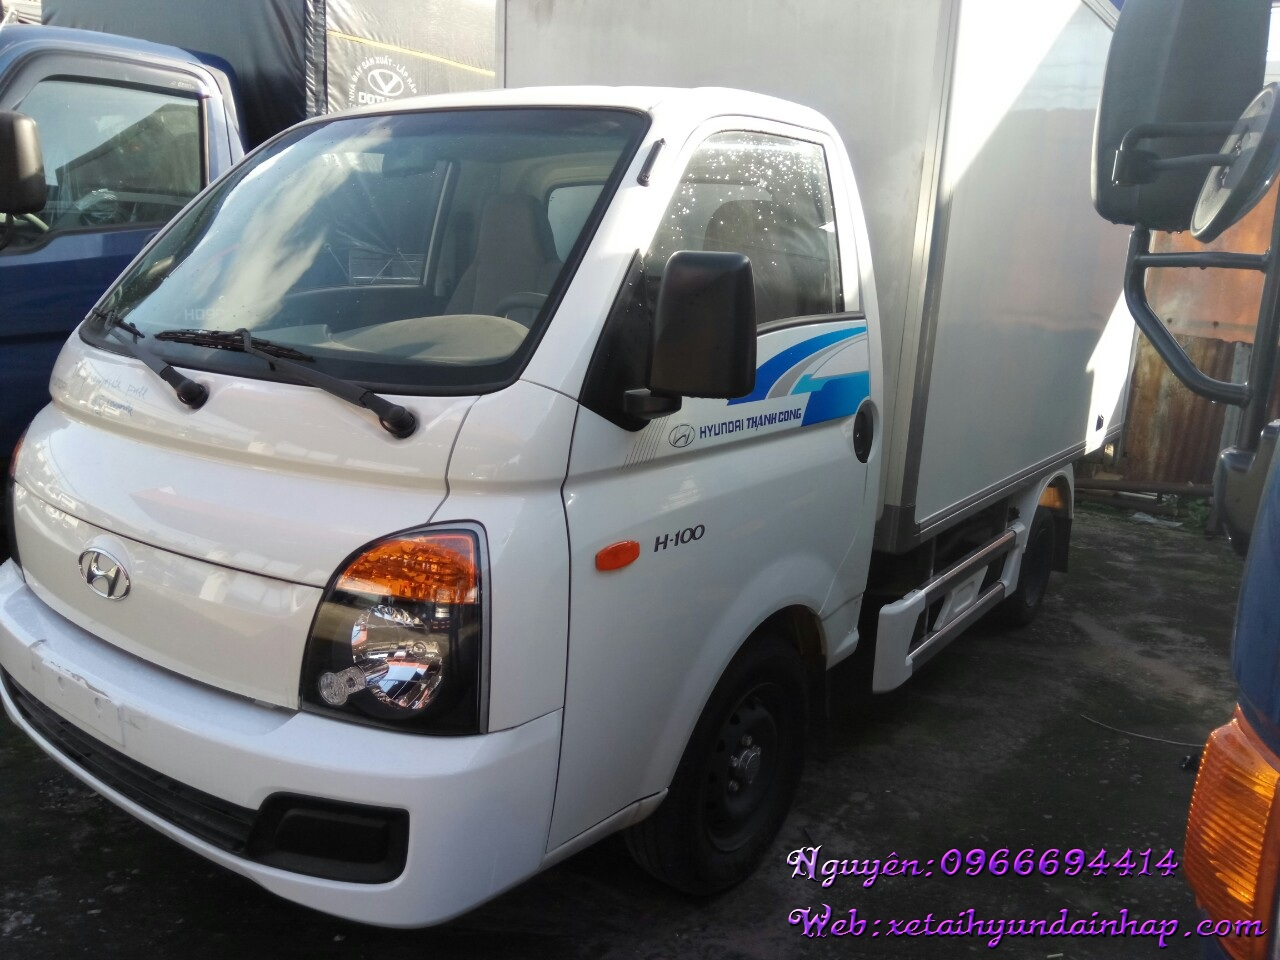 Hyundai h150 photo - 3